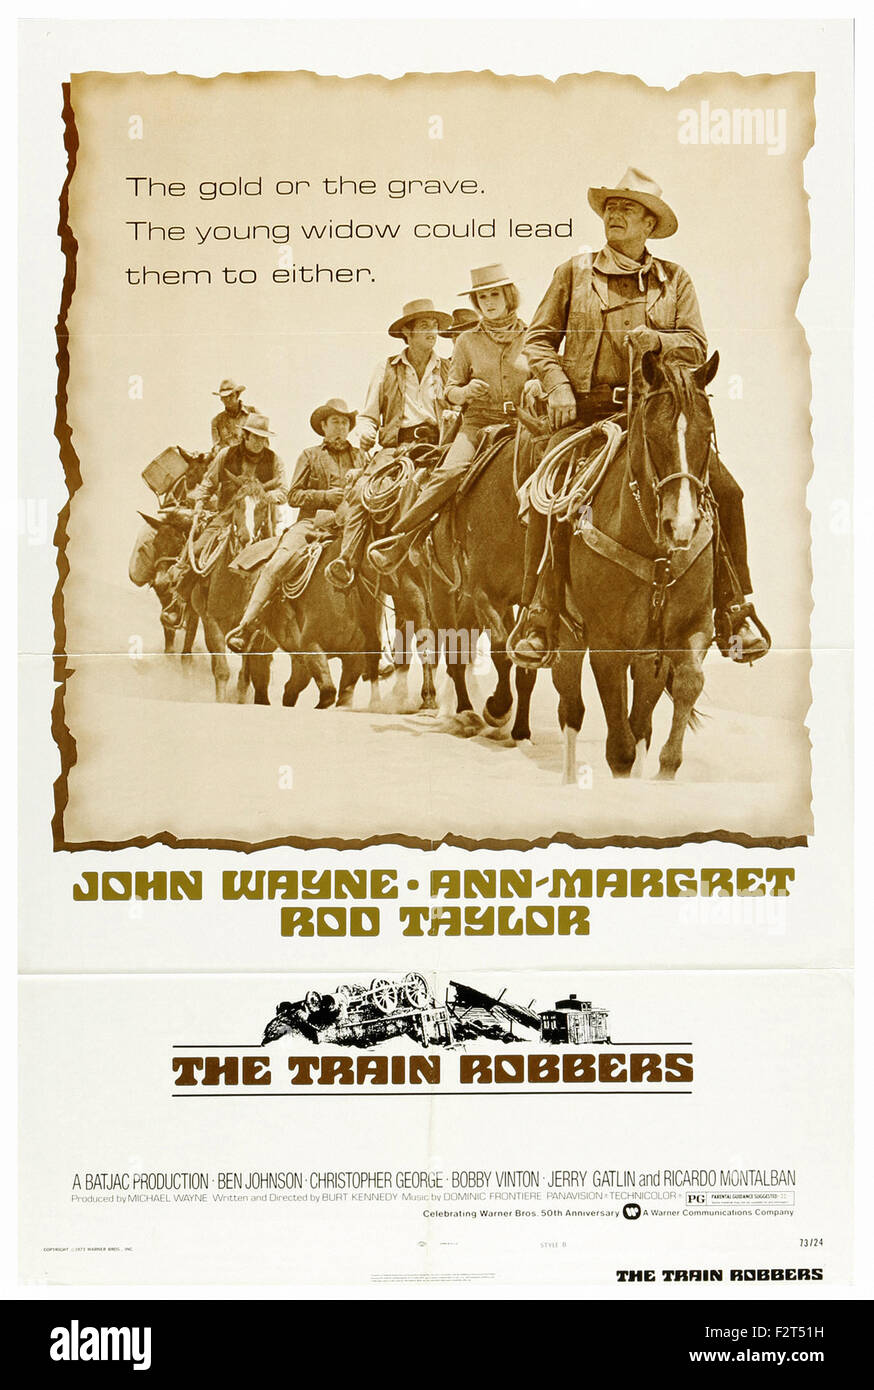 Train Robbers, The (1973) - Movie Poster - Stock Image